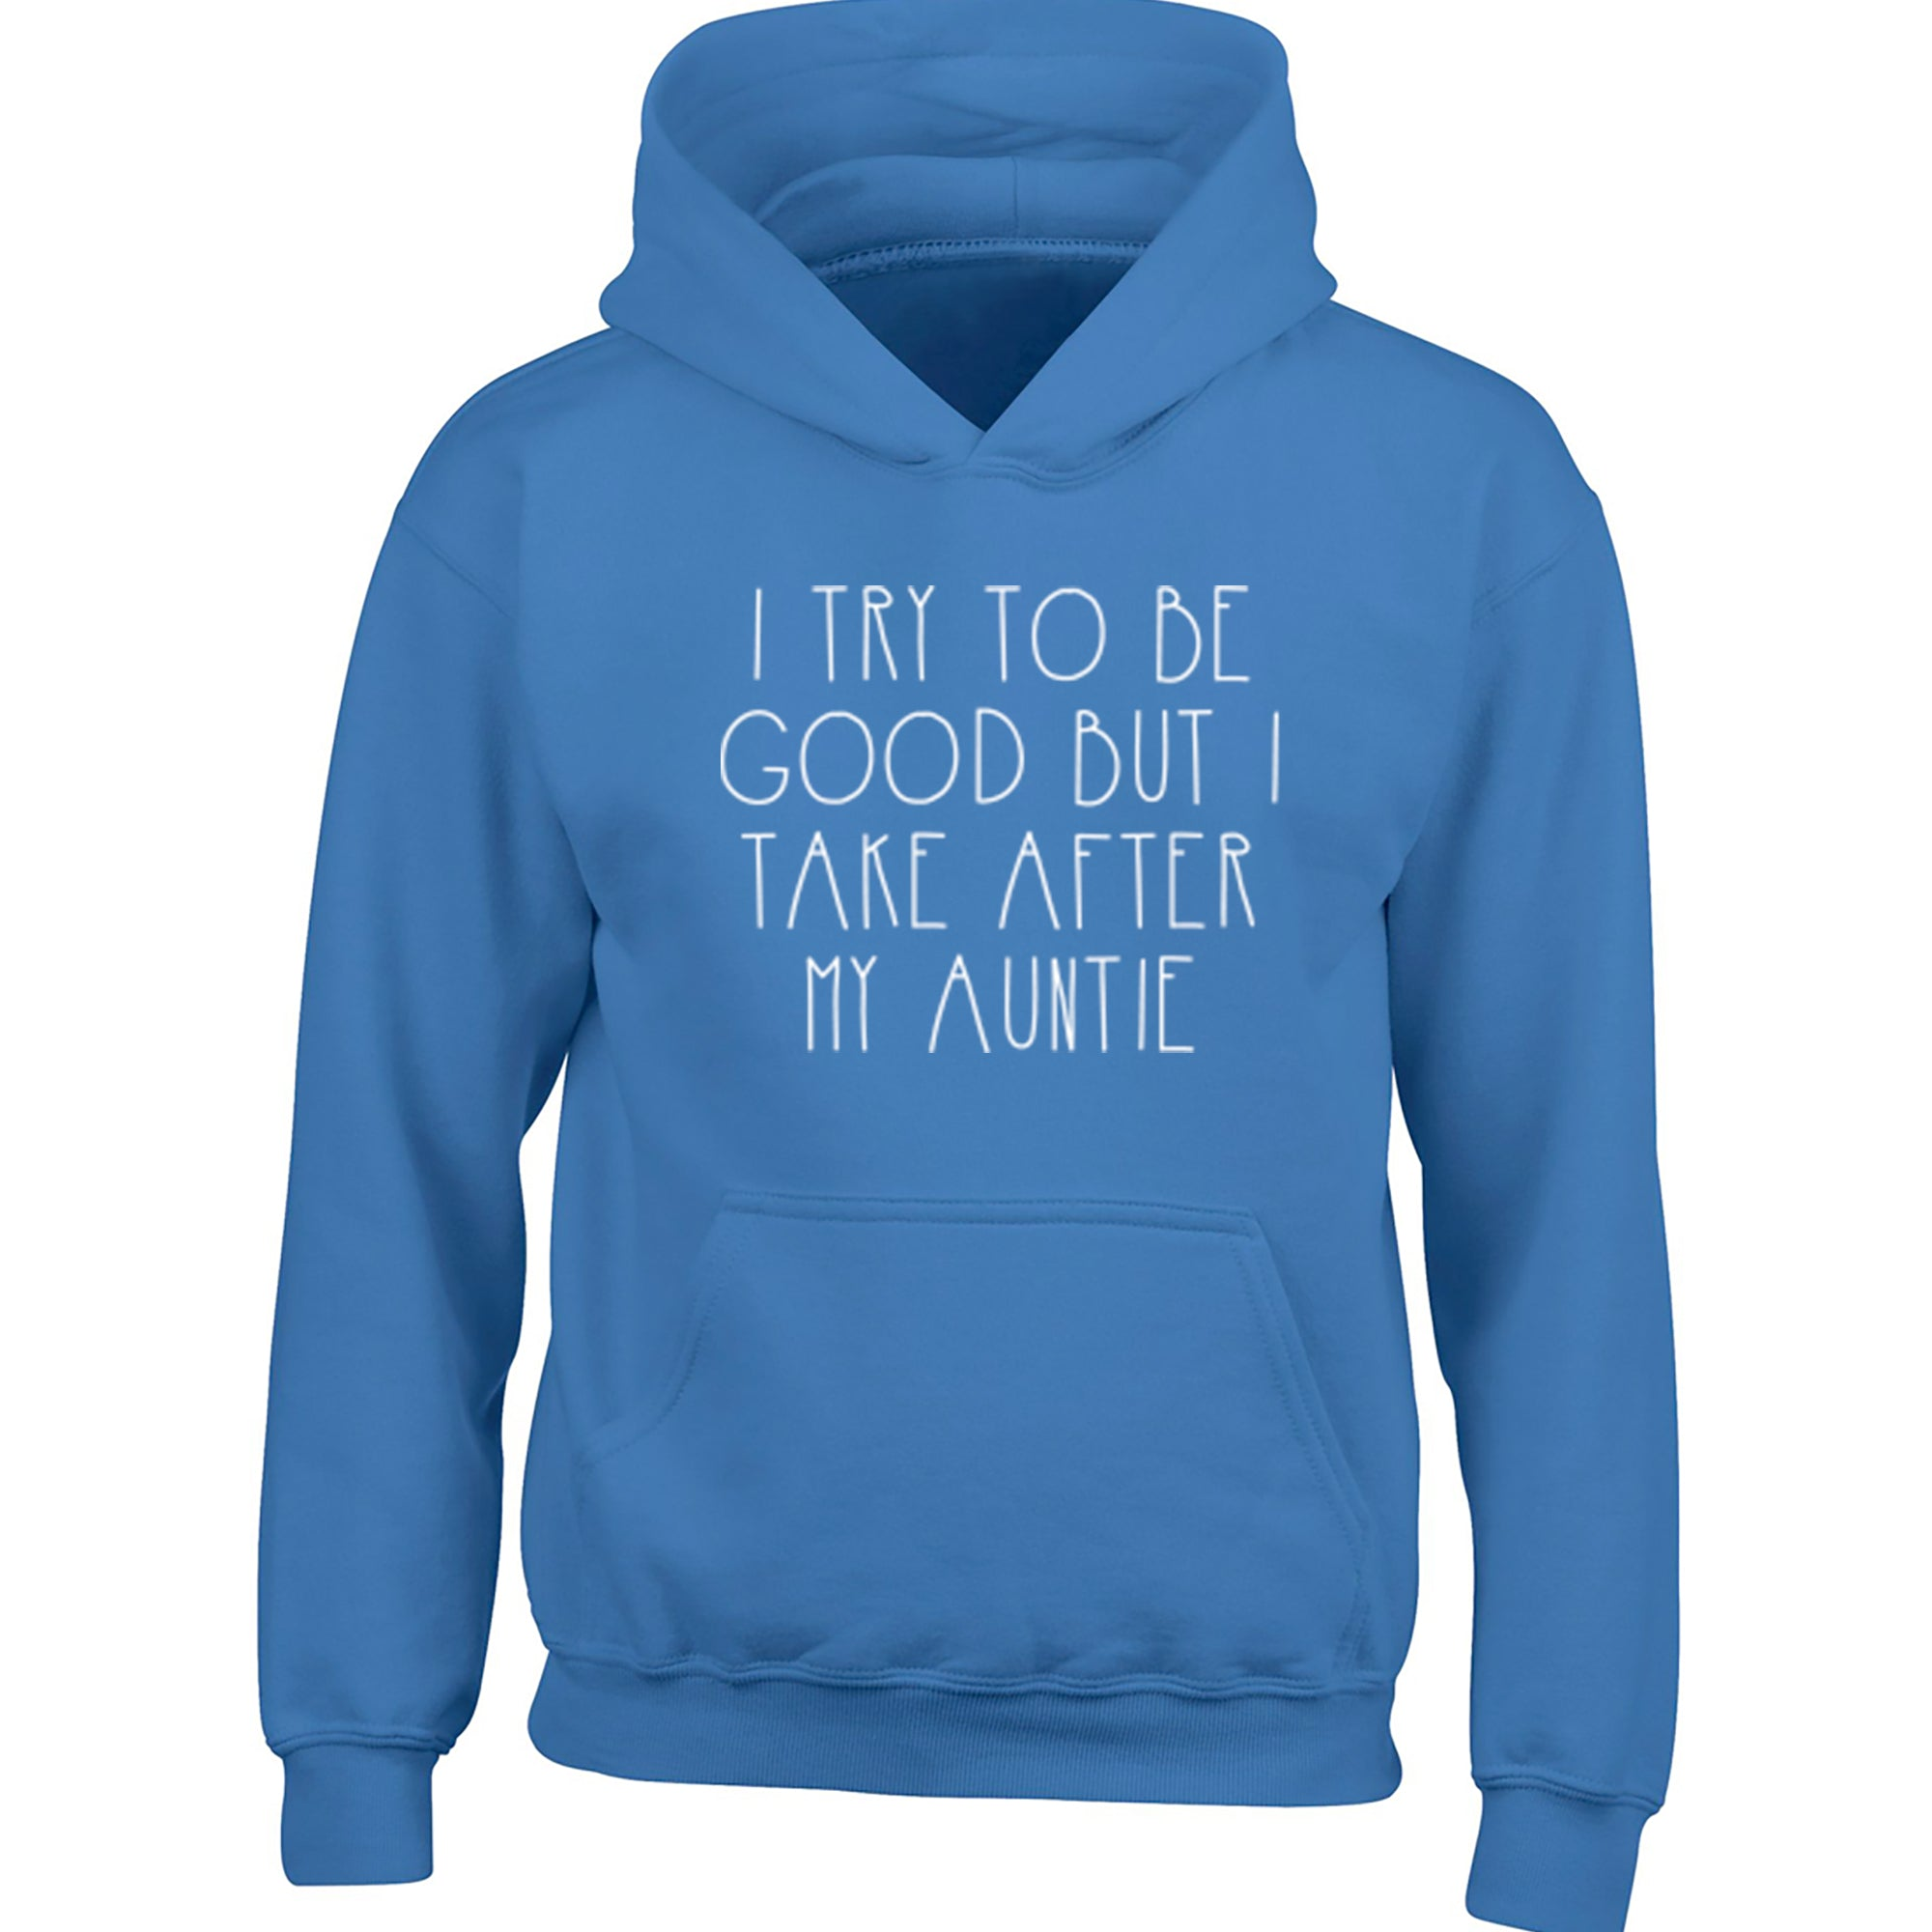 I Try To Be Good But I Take After My Auntie Childrens Ages 3/4-12/14 Unisex Hoodie K1533 - Illustrated Identity Ltd.